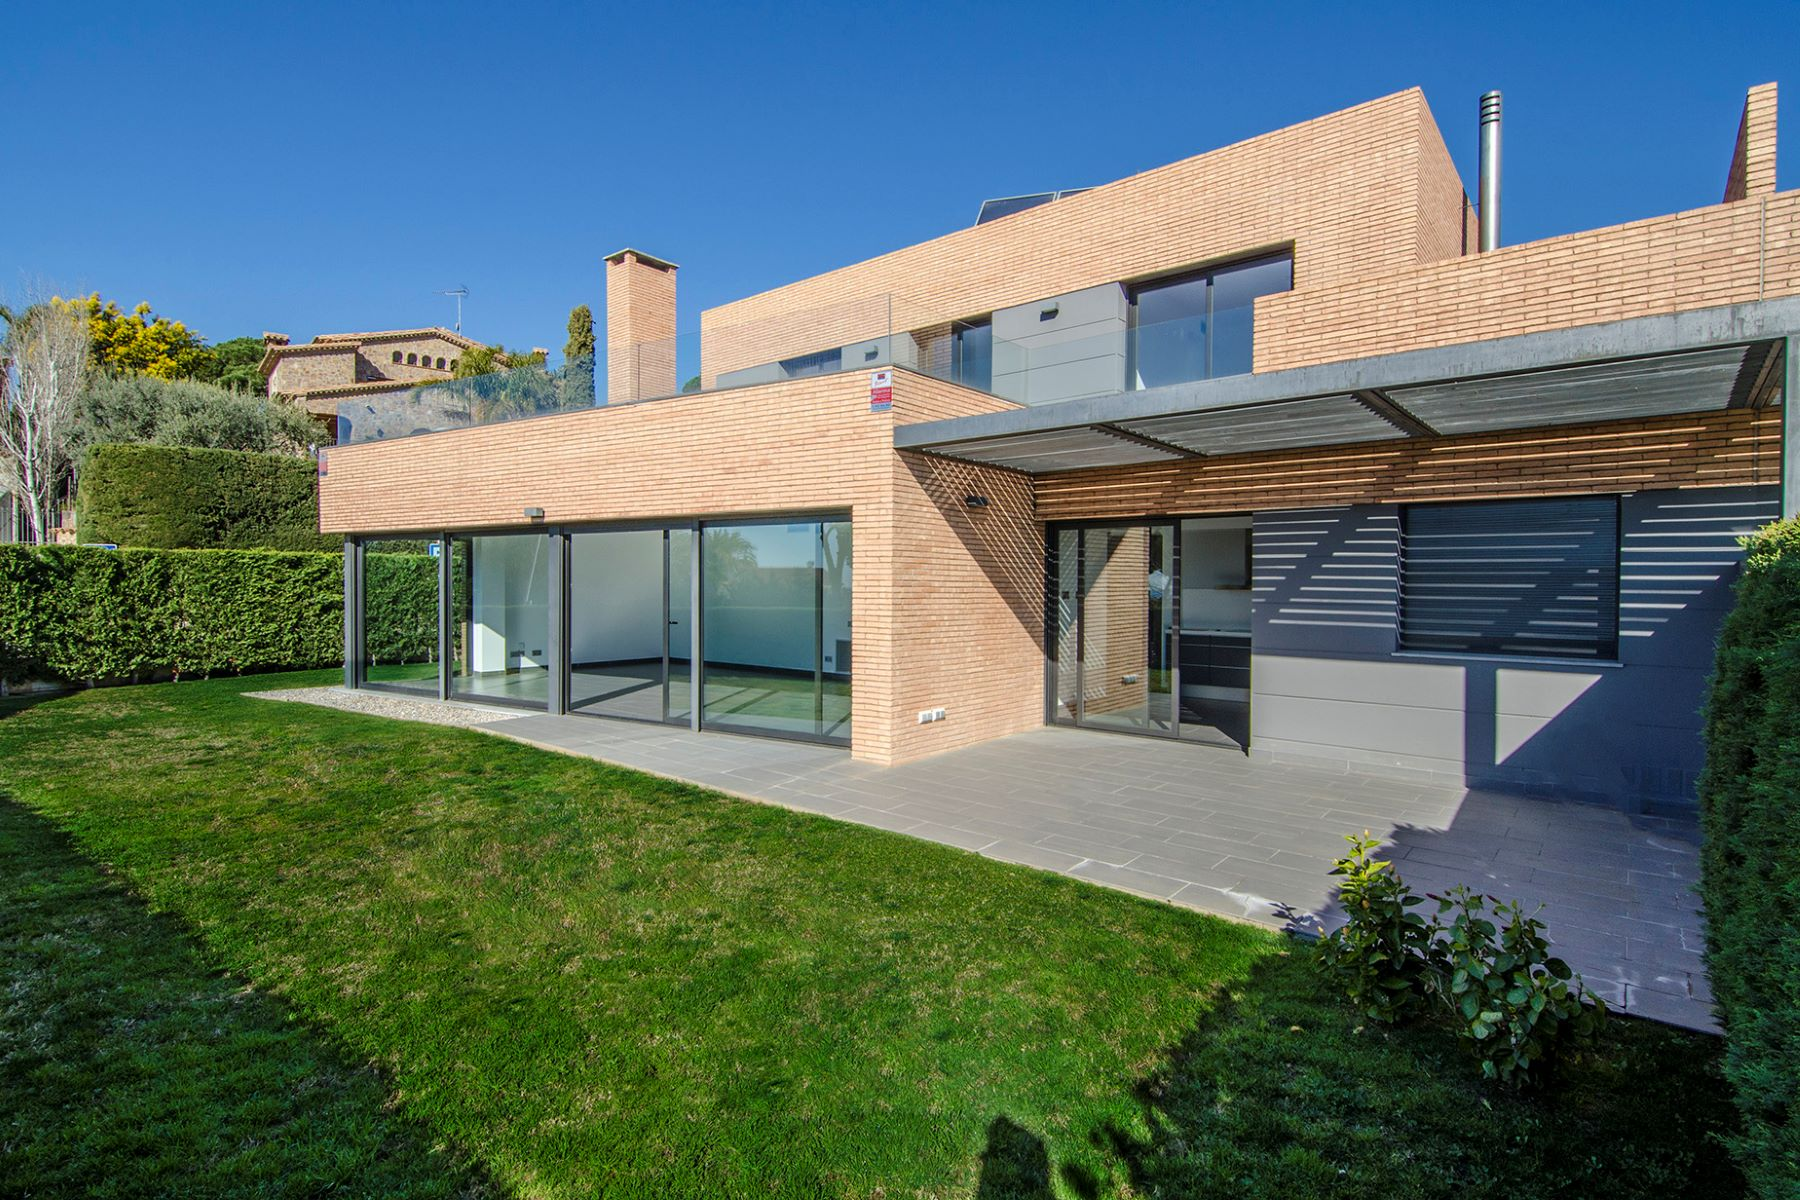 Maison unifamiliale pour l Vente à Beautiful Modern House Overlooking the Mediterranean Sea Other Cities Barcelona North Coast, Barcelona, 08328 Espagne